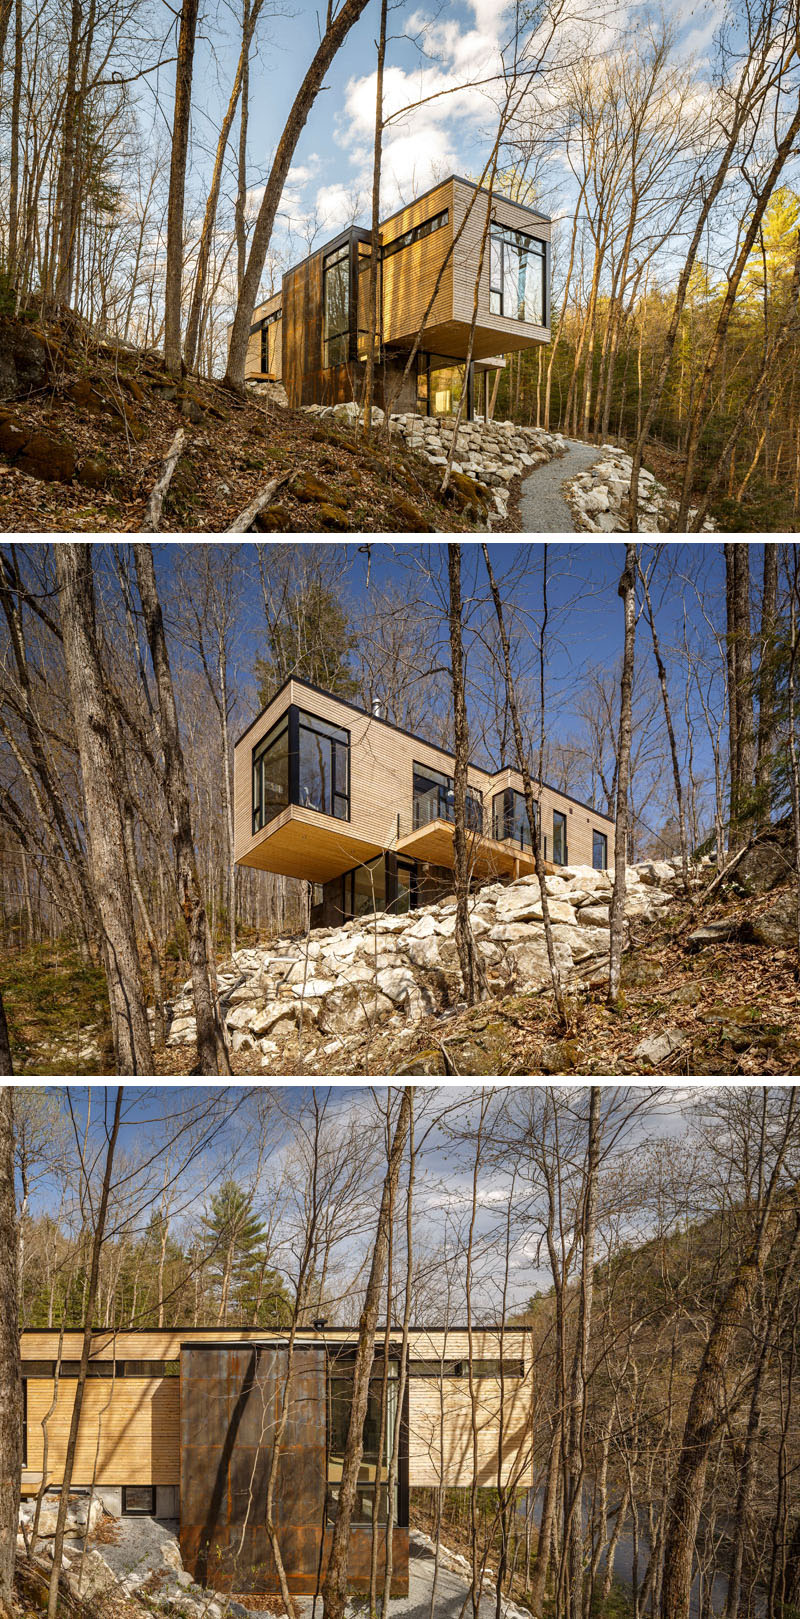 cliff-top-house-201216-458-14